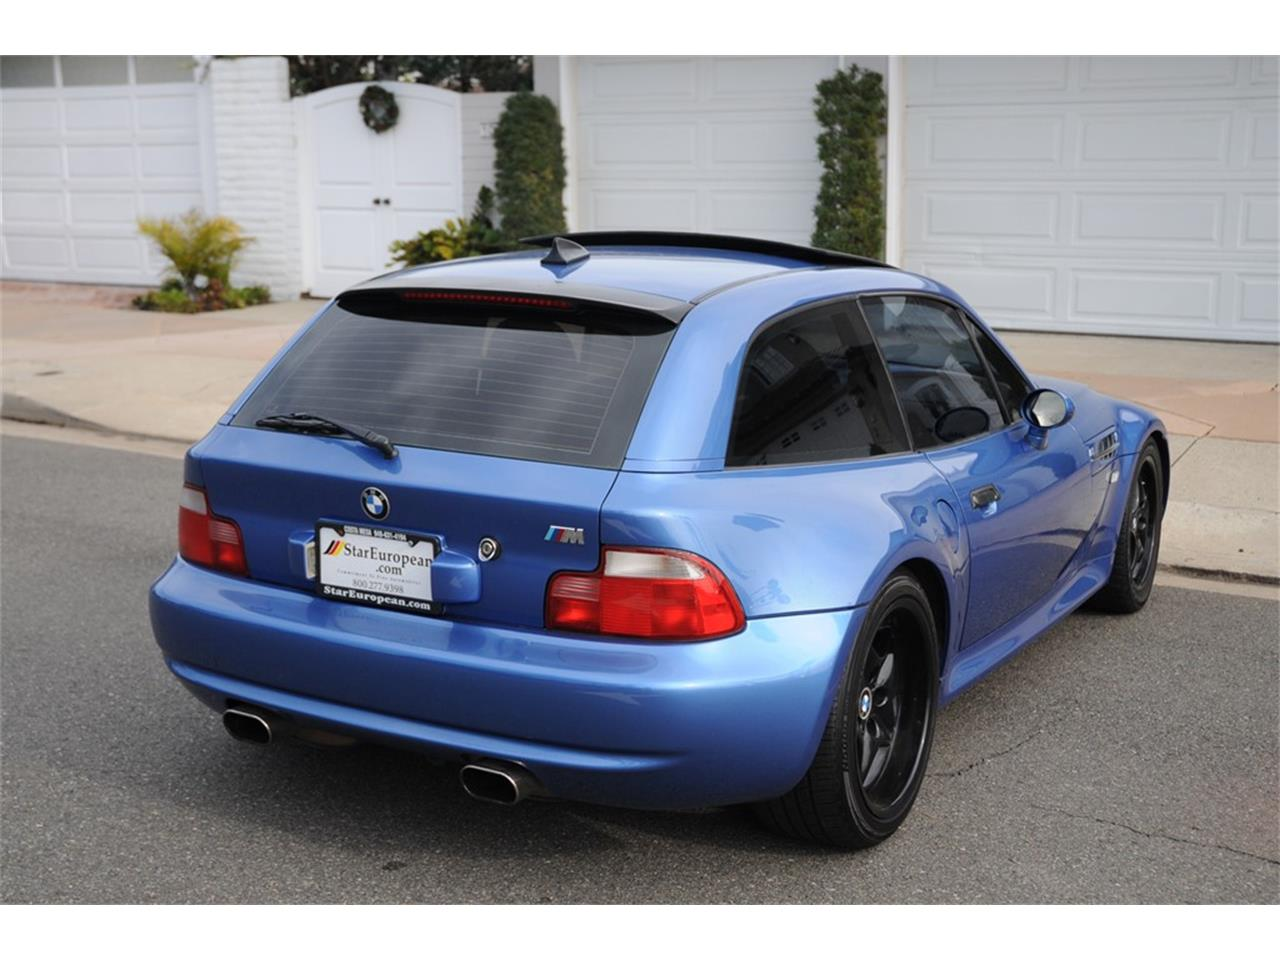 Large Picture of 2000 BMW M Coupe - $17,990.00 Offered by Star European Inc. - P65V